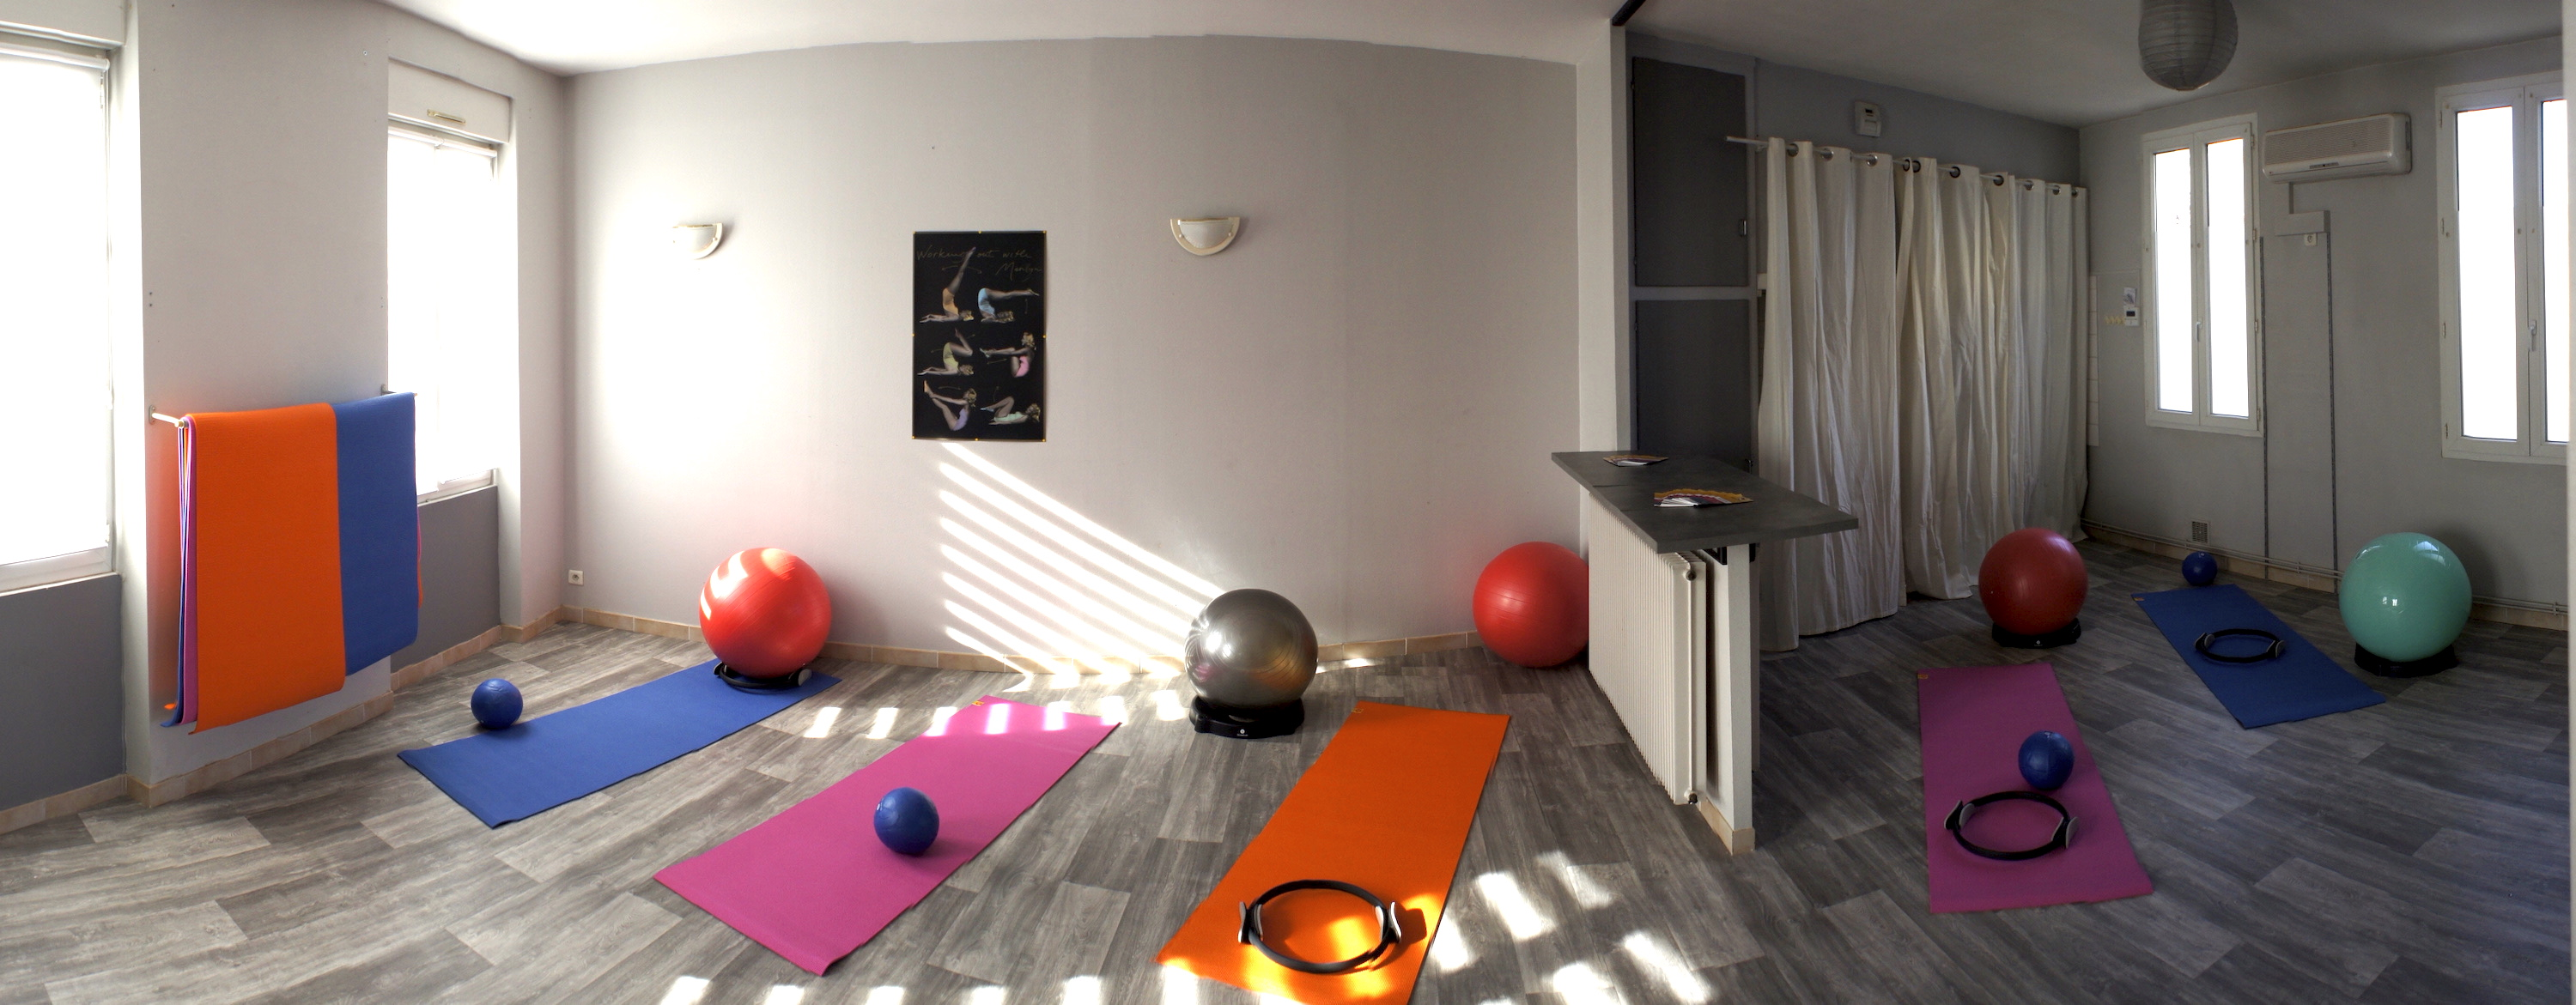 studio panoramique pilates albi